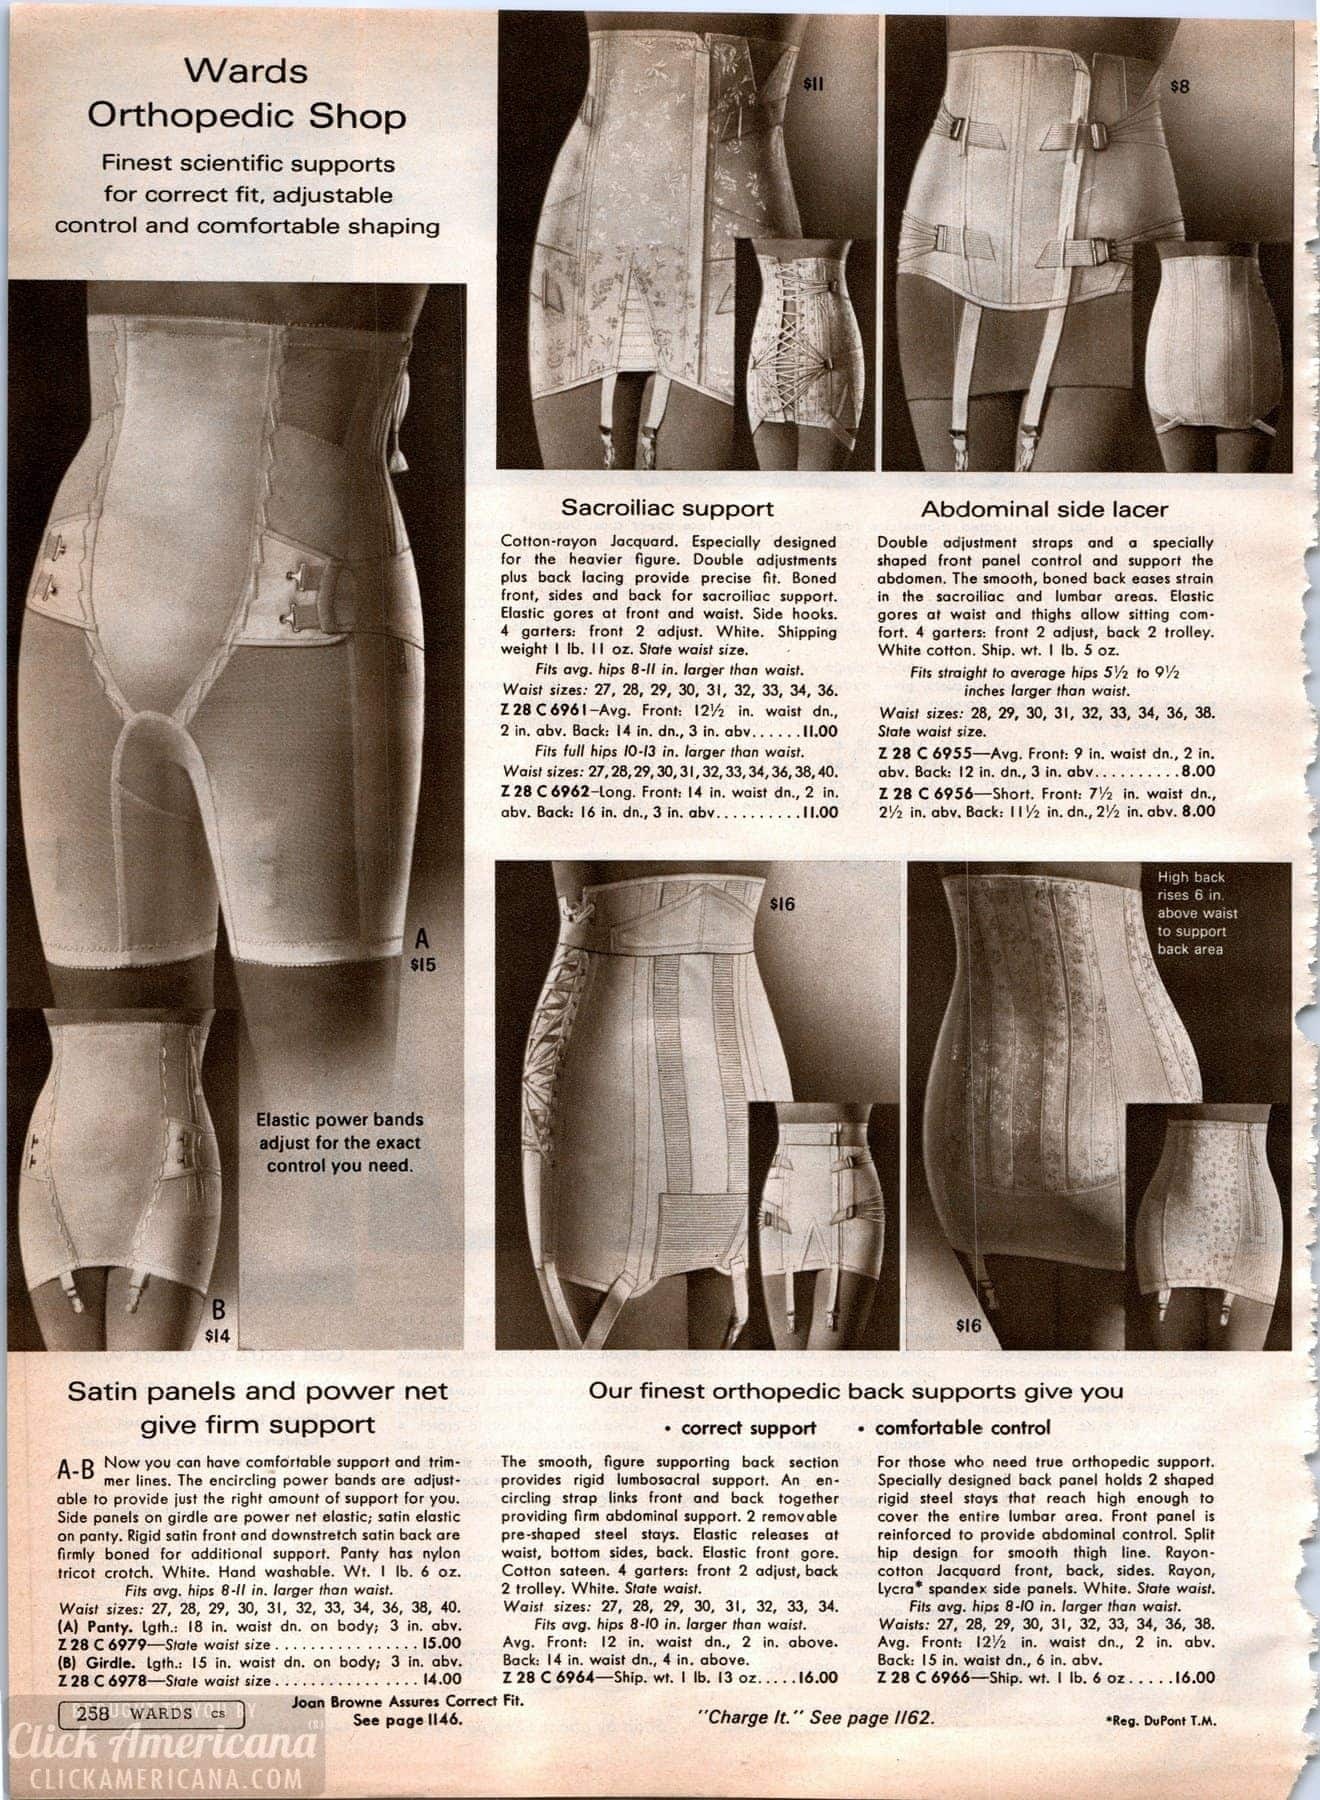 Vintage lingerie - orthopedic girdles and shapers